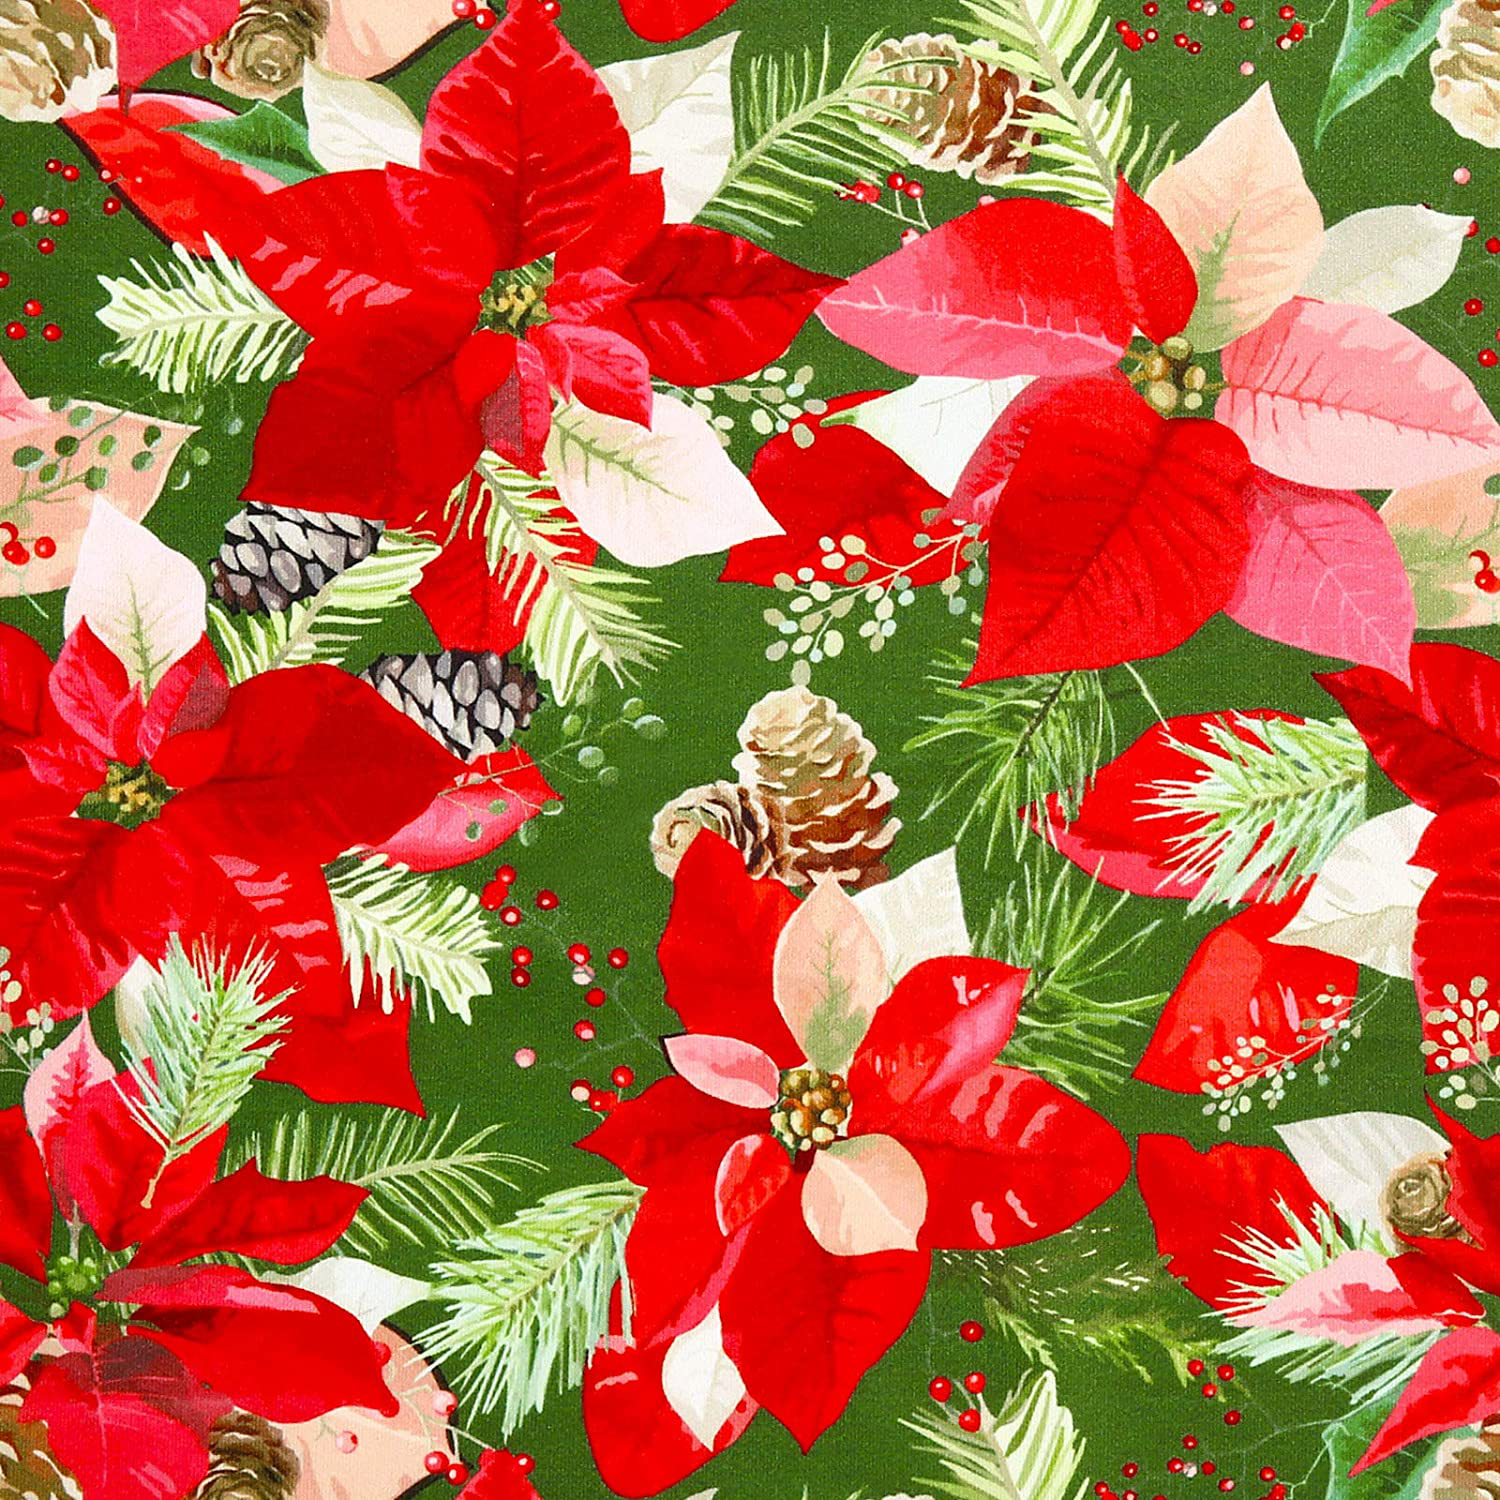 Photo of Christmas Polyester Fabric Sheet 43 x 35 Inch Christmas Flower Pattern Square Fabric Floral Printed Fabric Patchwork Quilting Craft Fabric for Sewing Quilting Apparel Craft Home Decor